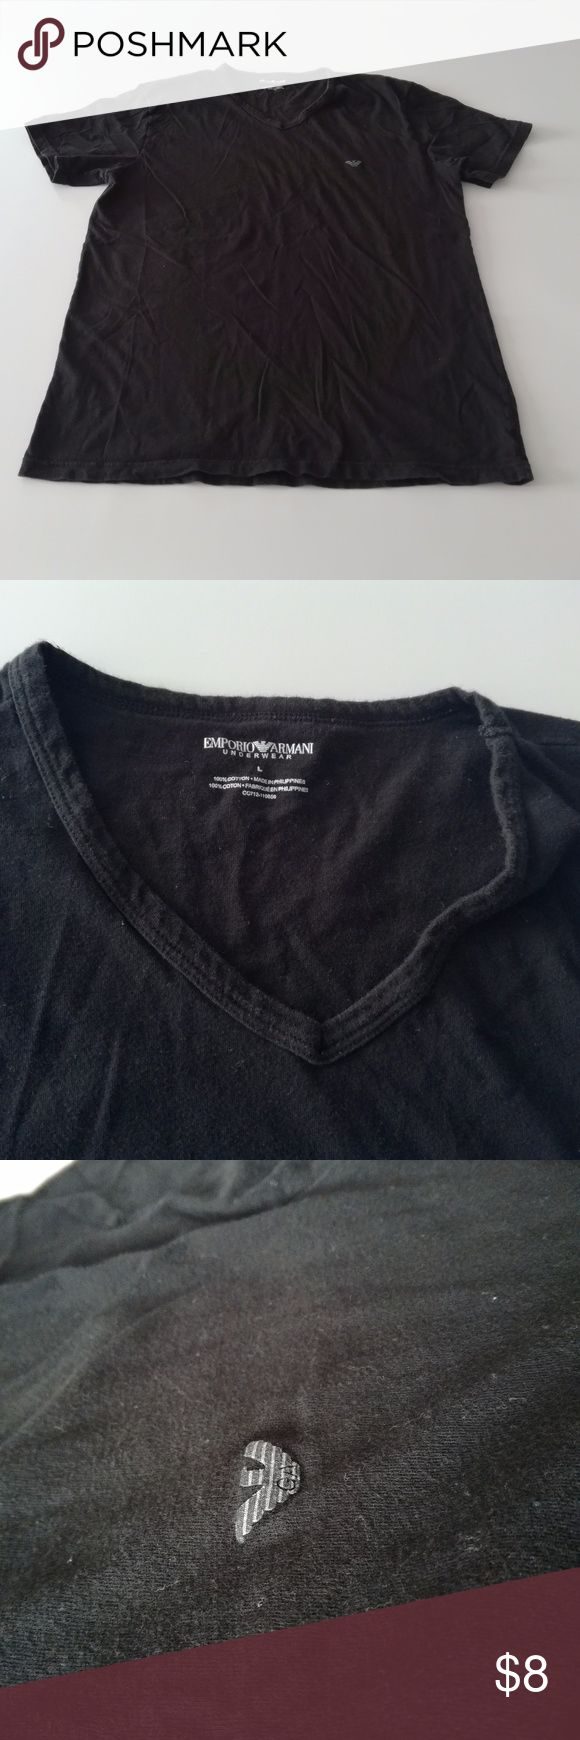 "Emporio Armani Black Undershirt L 2 WORN Emporio Armani Black Undershirt  L Certain pilling, and side label is a bit faded No holes or damage  Measurements laying flat Pit to pit: 20"" Full length: 26"" Emporio Armani Underwear & Socks Undershirts"